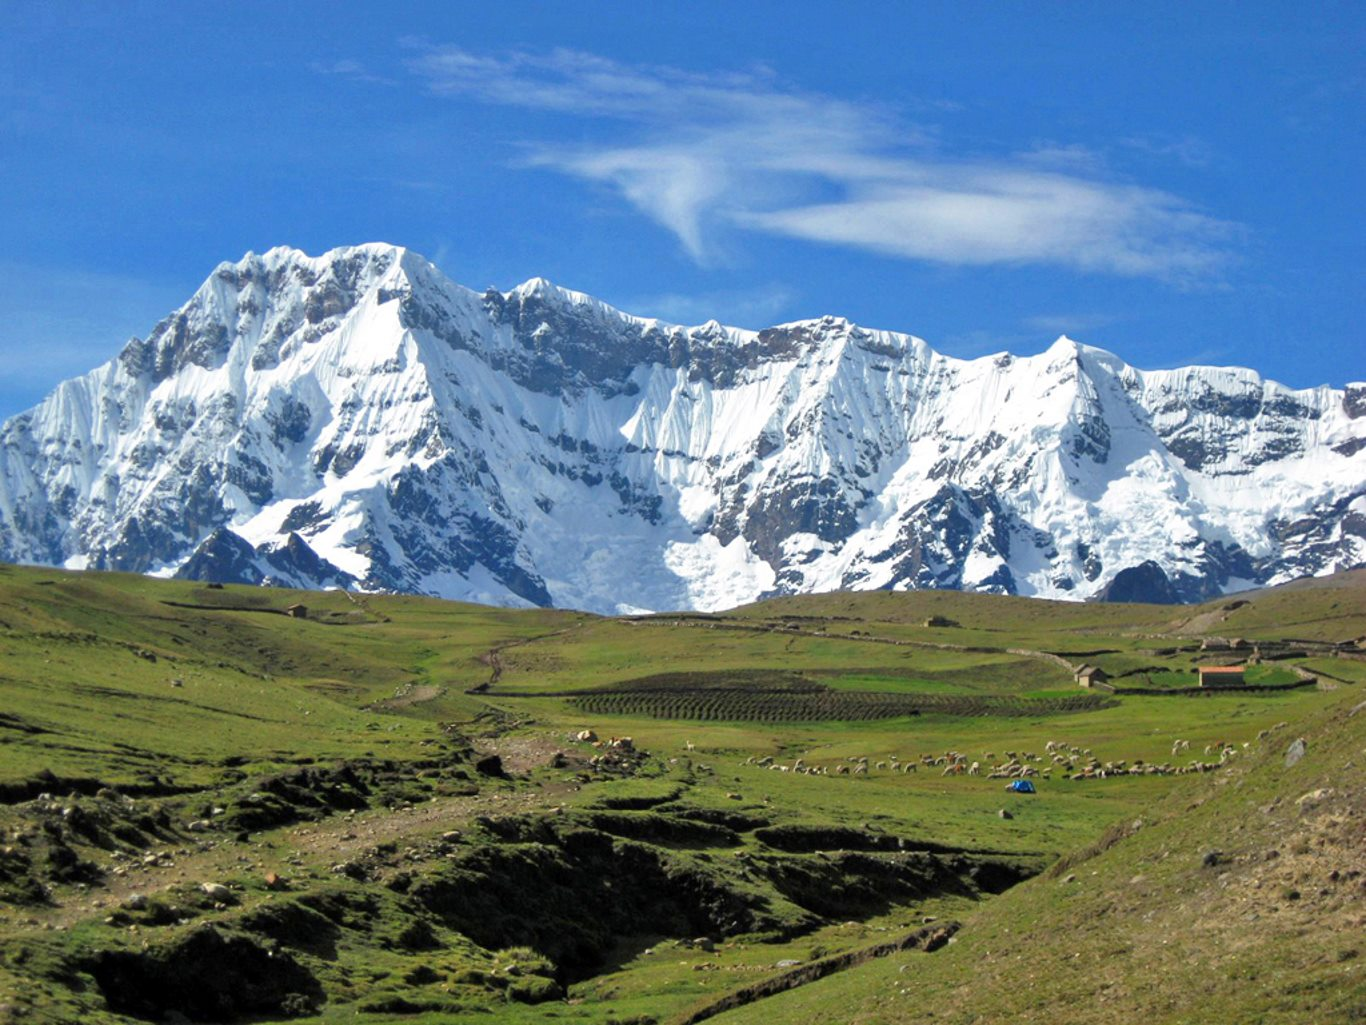 Highest mountains in Peru: Ausangate